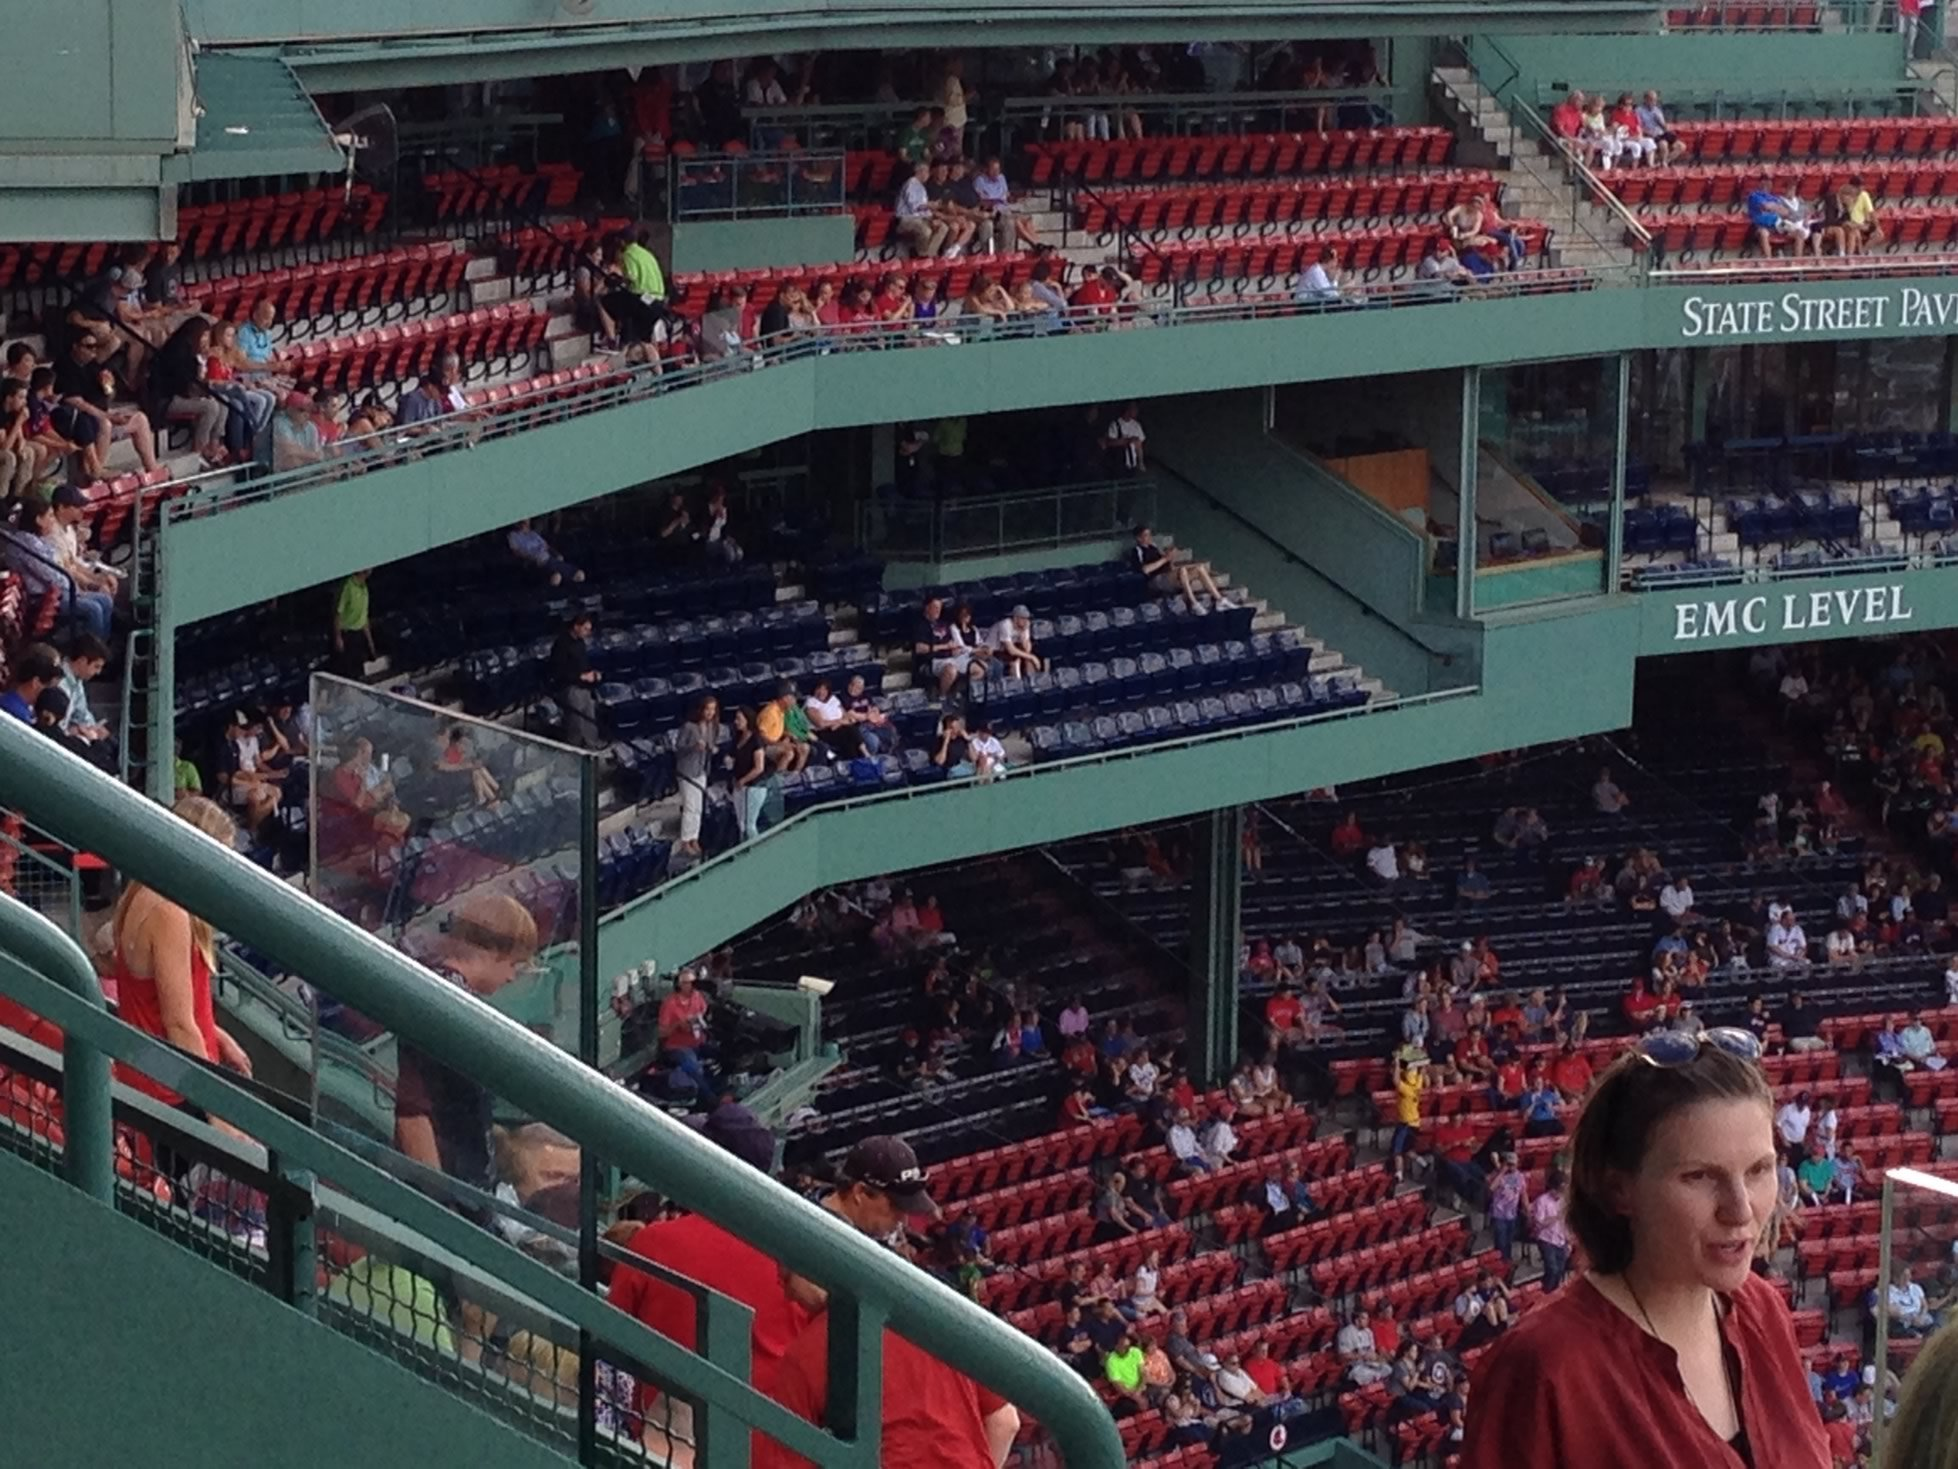 The EMC Club seats behind home plate are located just above the Grandstand and just below the Pavilion Club All Grandstand seats at Fenway Park